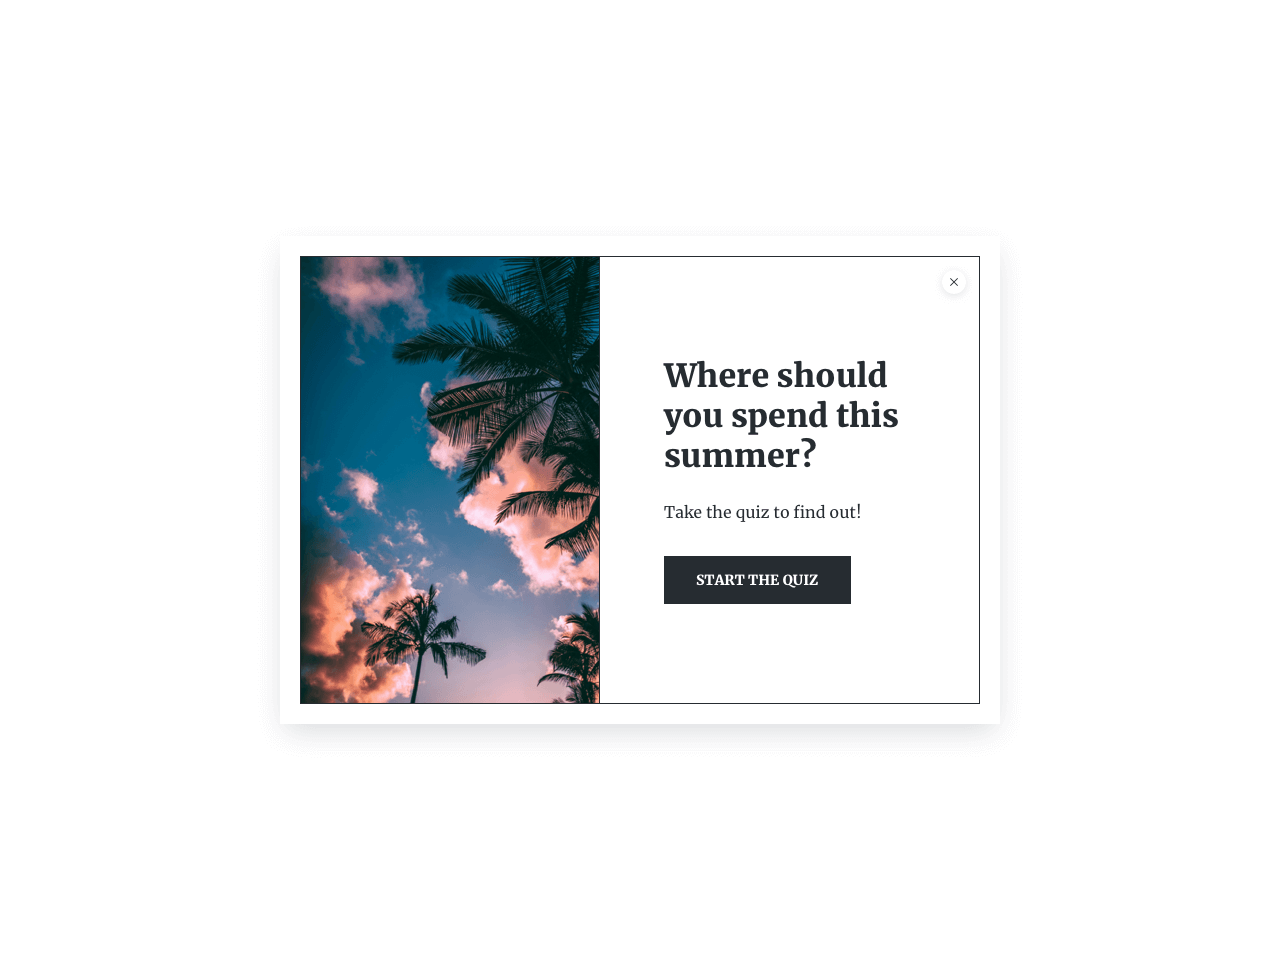 Survey welcome page example with a high-quality image to drive visitors' attention